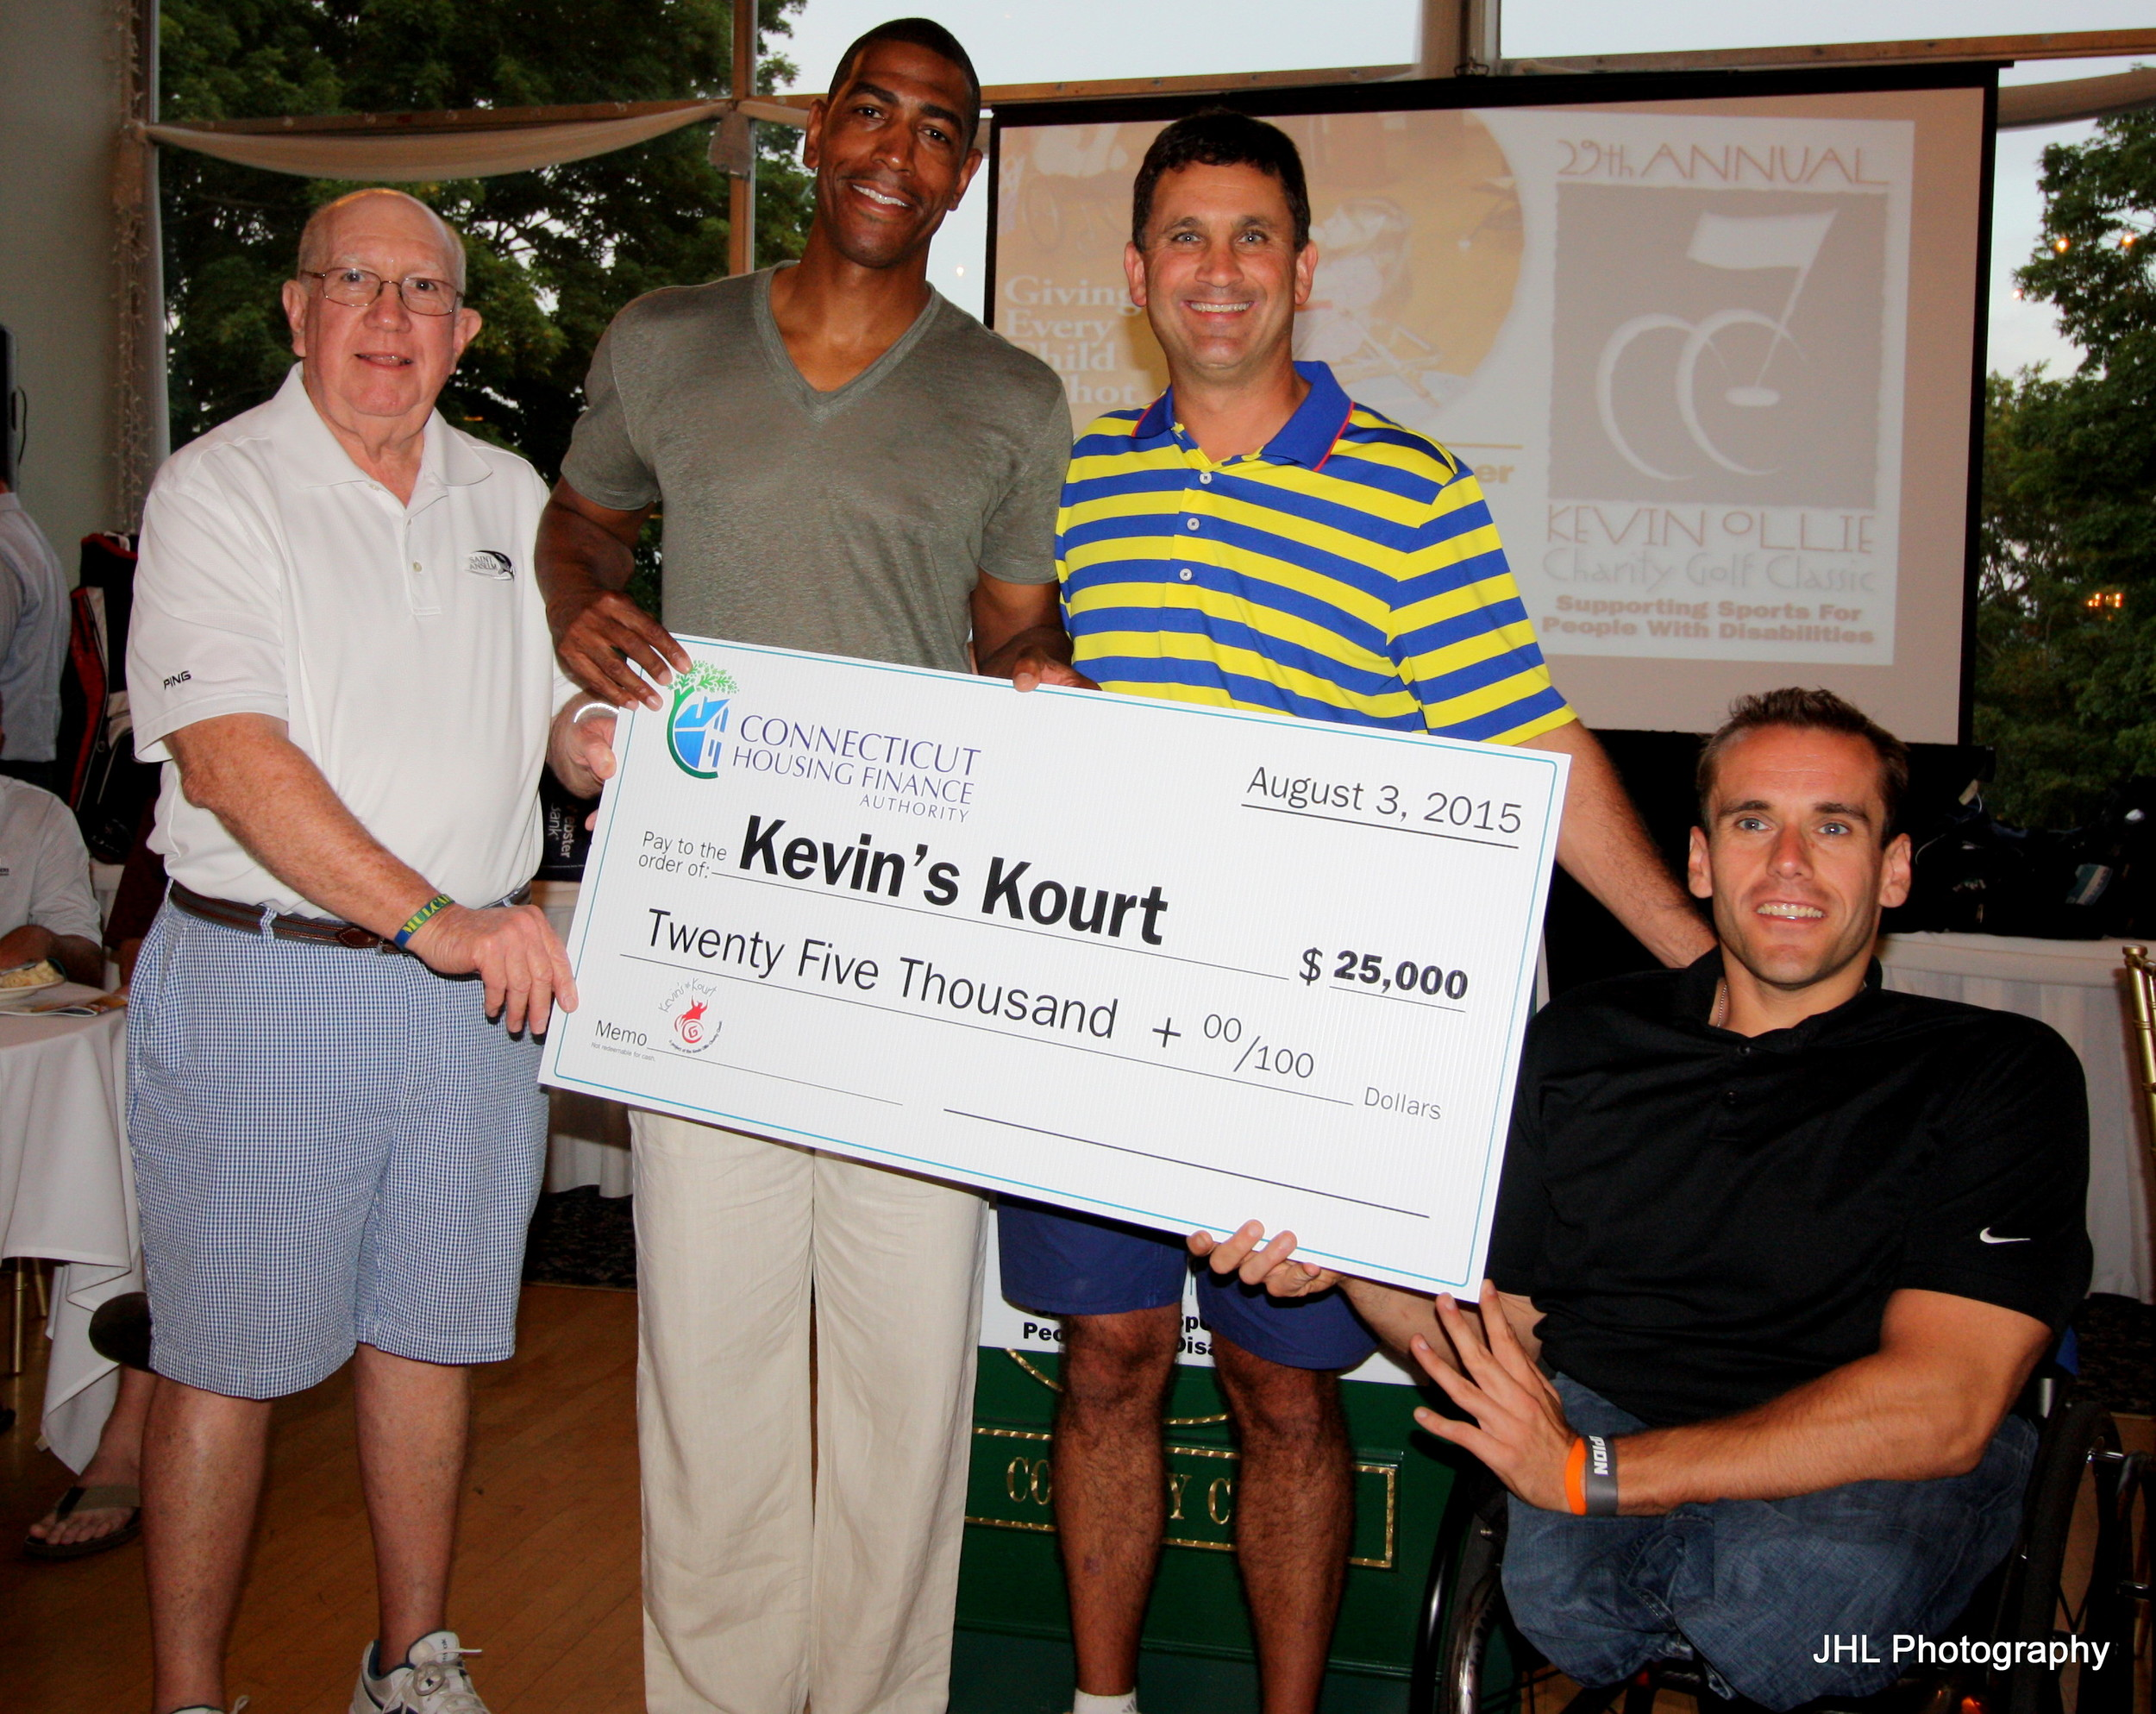 Grant presentation to Kevin's Kourts from Connecticut Housing Finance Authority